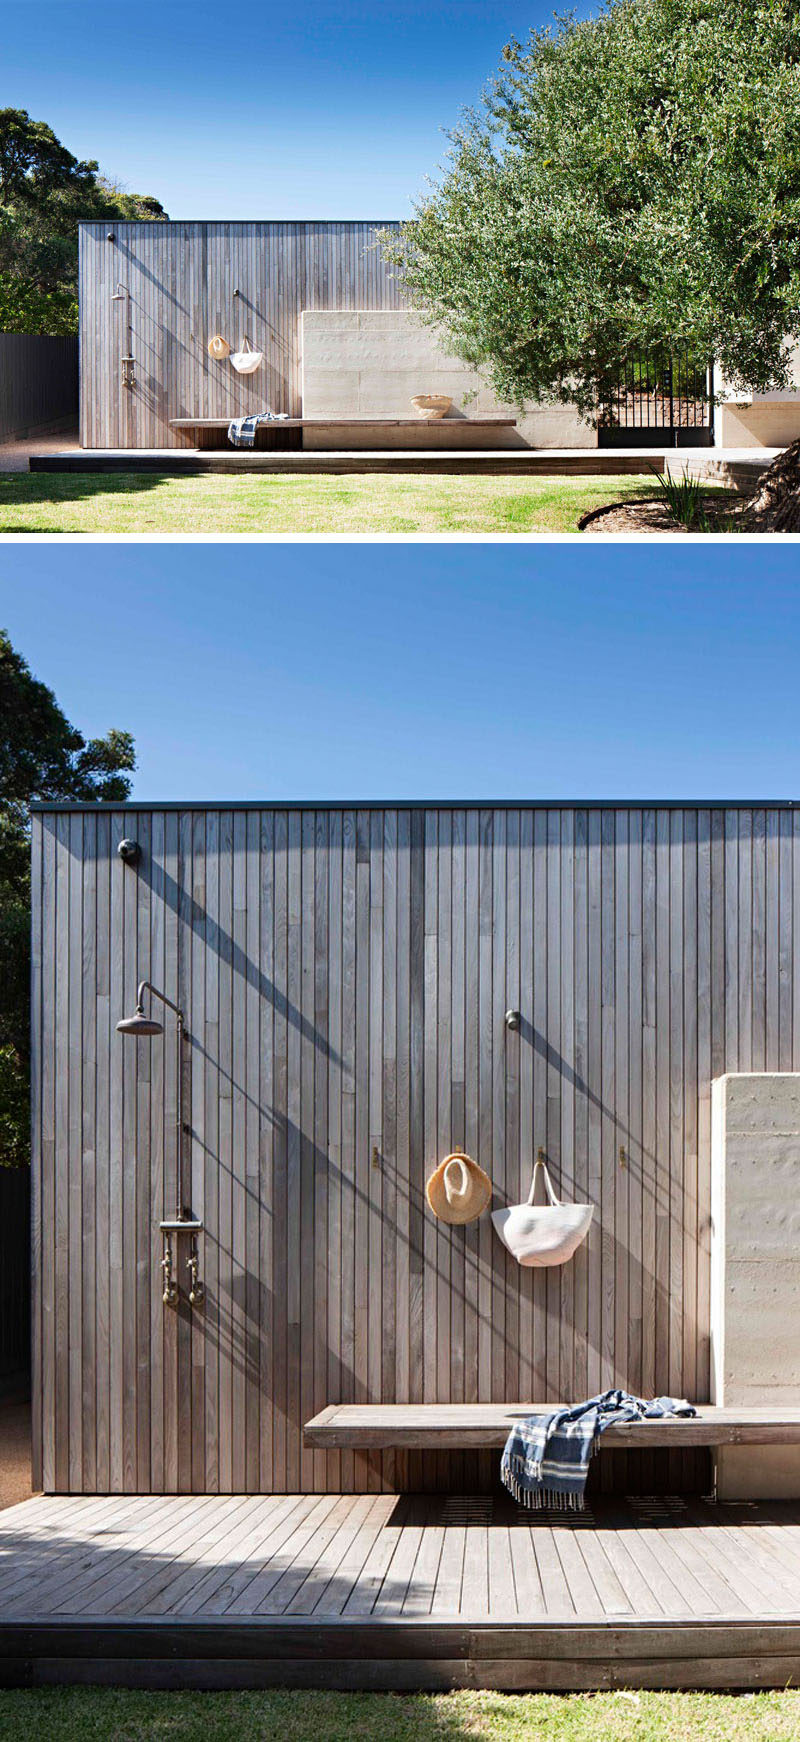 Located along the back wall of this modern garage is a built-in bench, wall hooks and an outdoor shower.